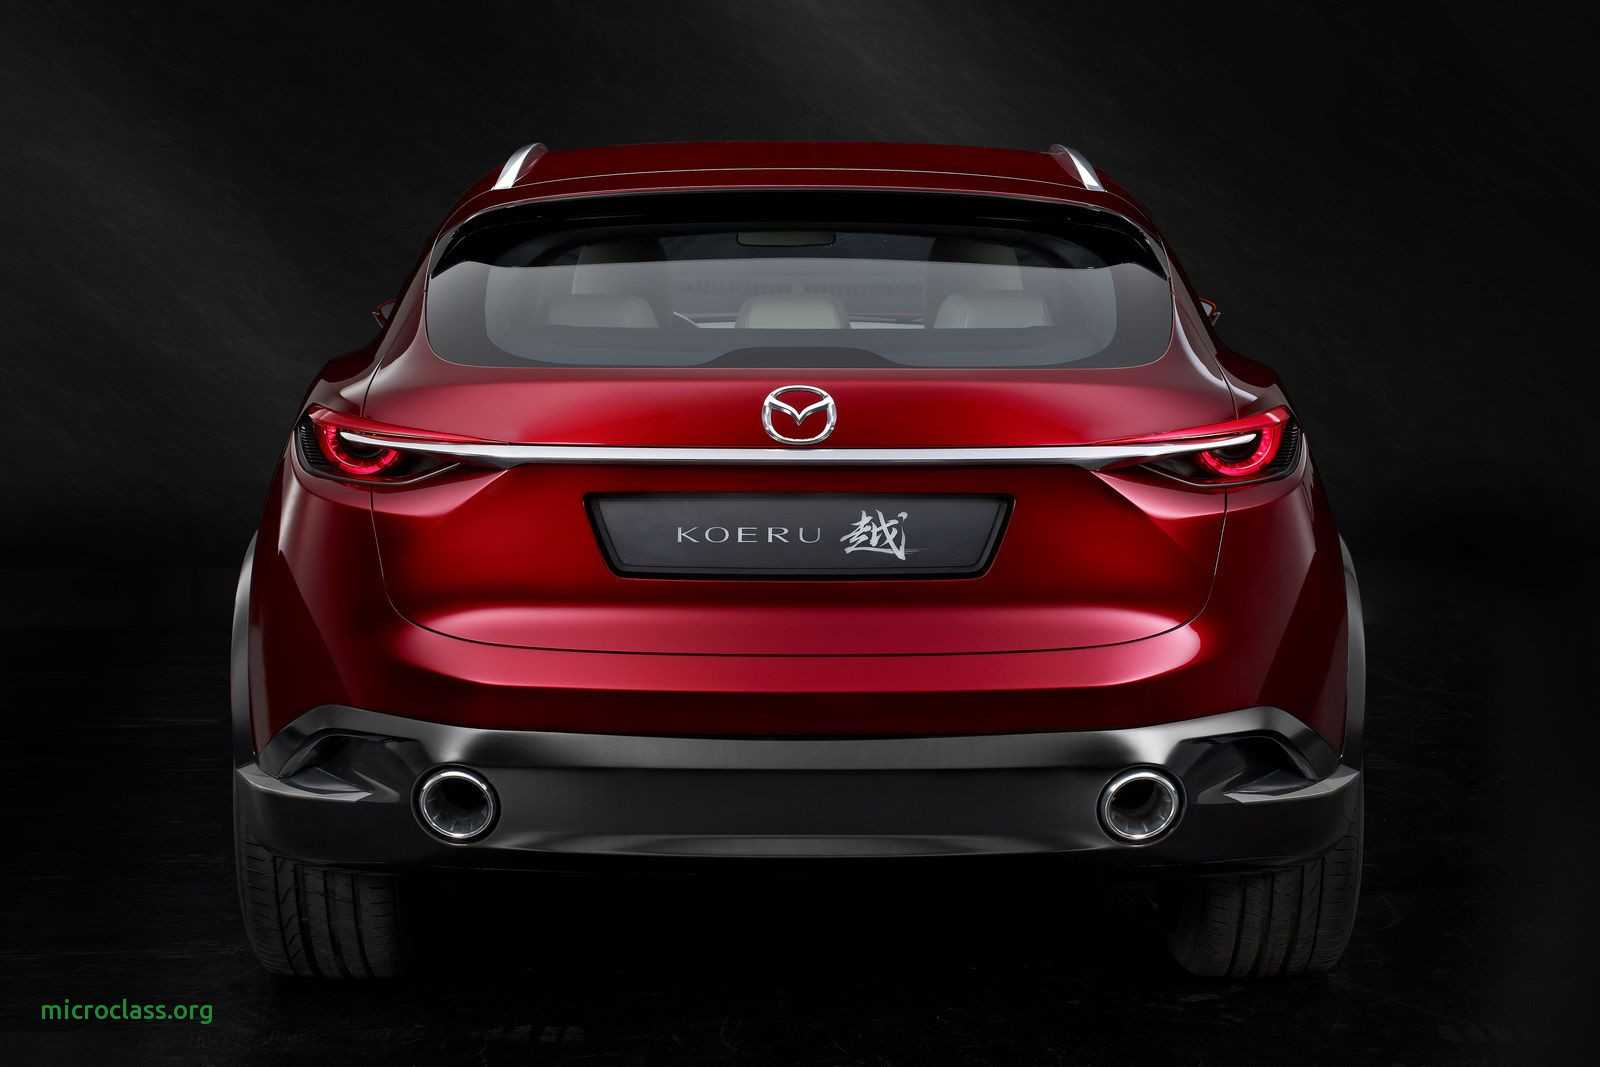 44 Concept Of Mazda 6 2020 Awd Research New For Mazda 6 2020